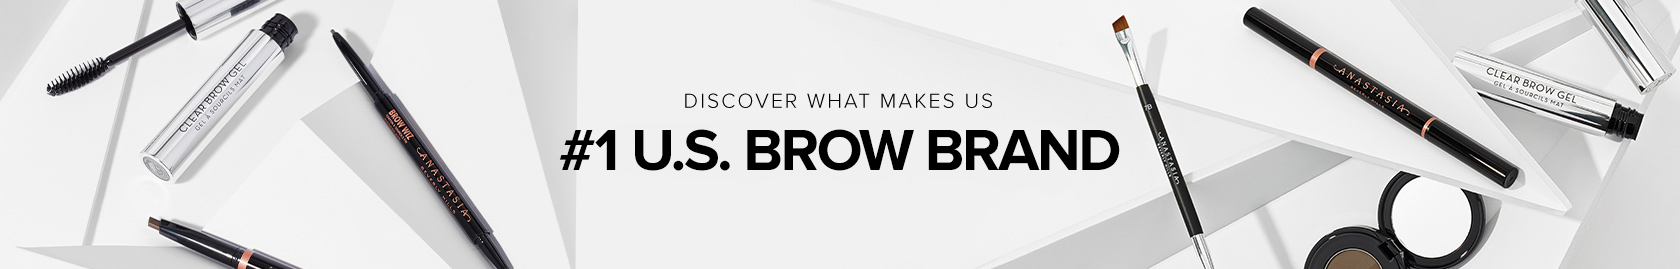 Discover What Makes Us #1 U.S. Brow Brand